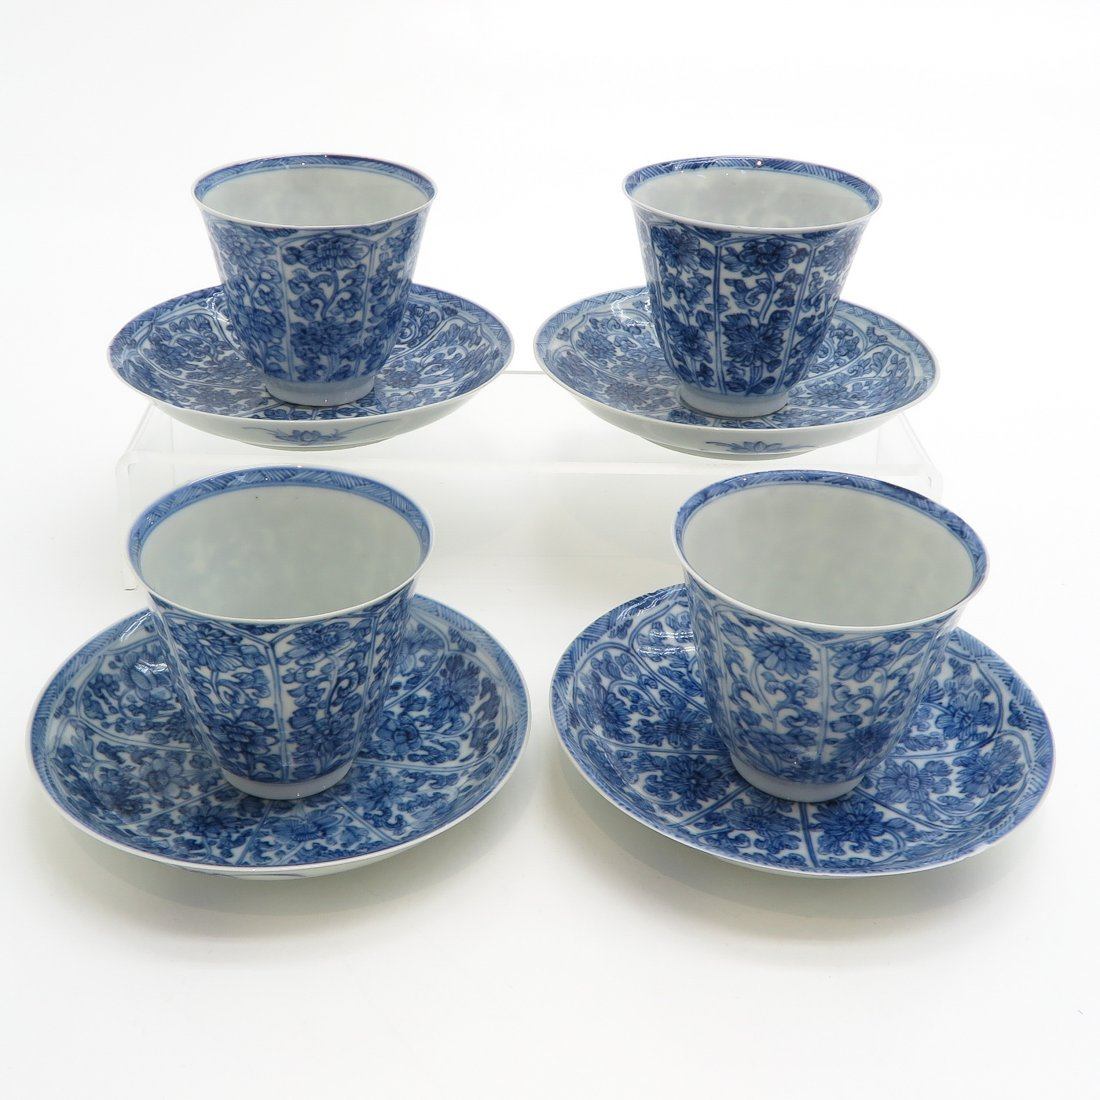 China Porcelain Cups and Saucers